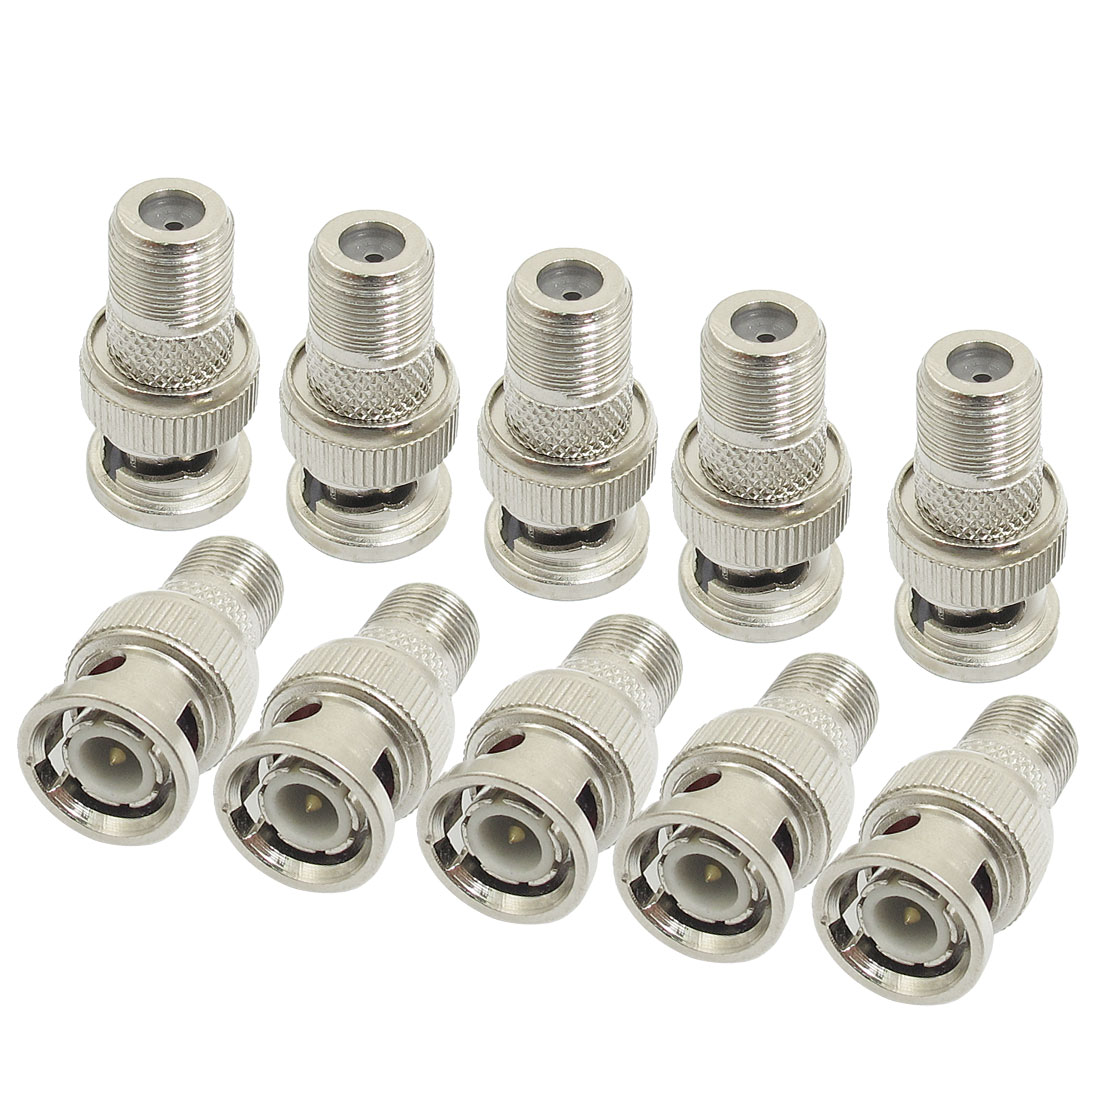 10 Pcs Replacement BNC Male to F Female Plug Metal Adapter Connectors